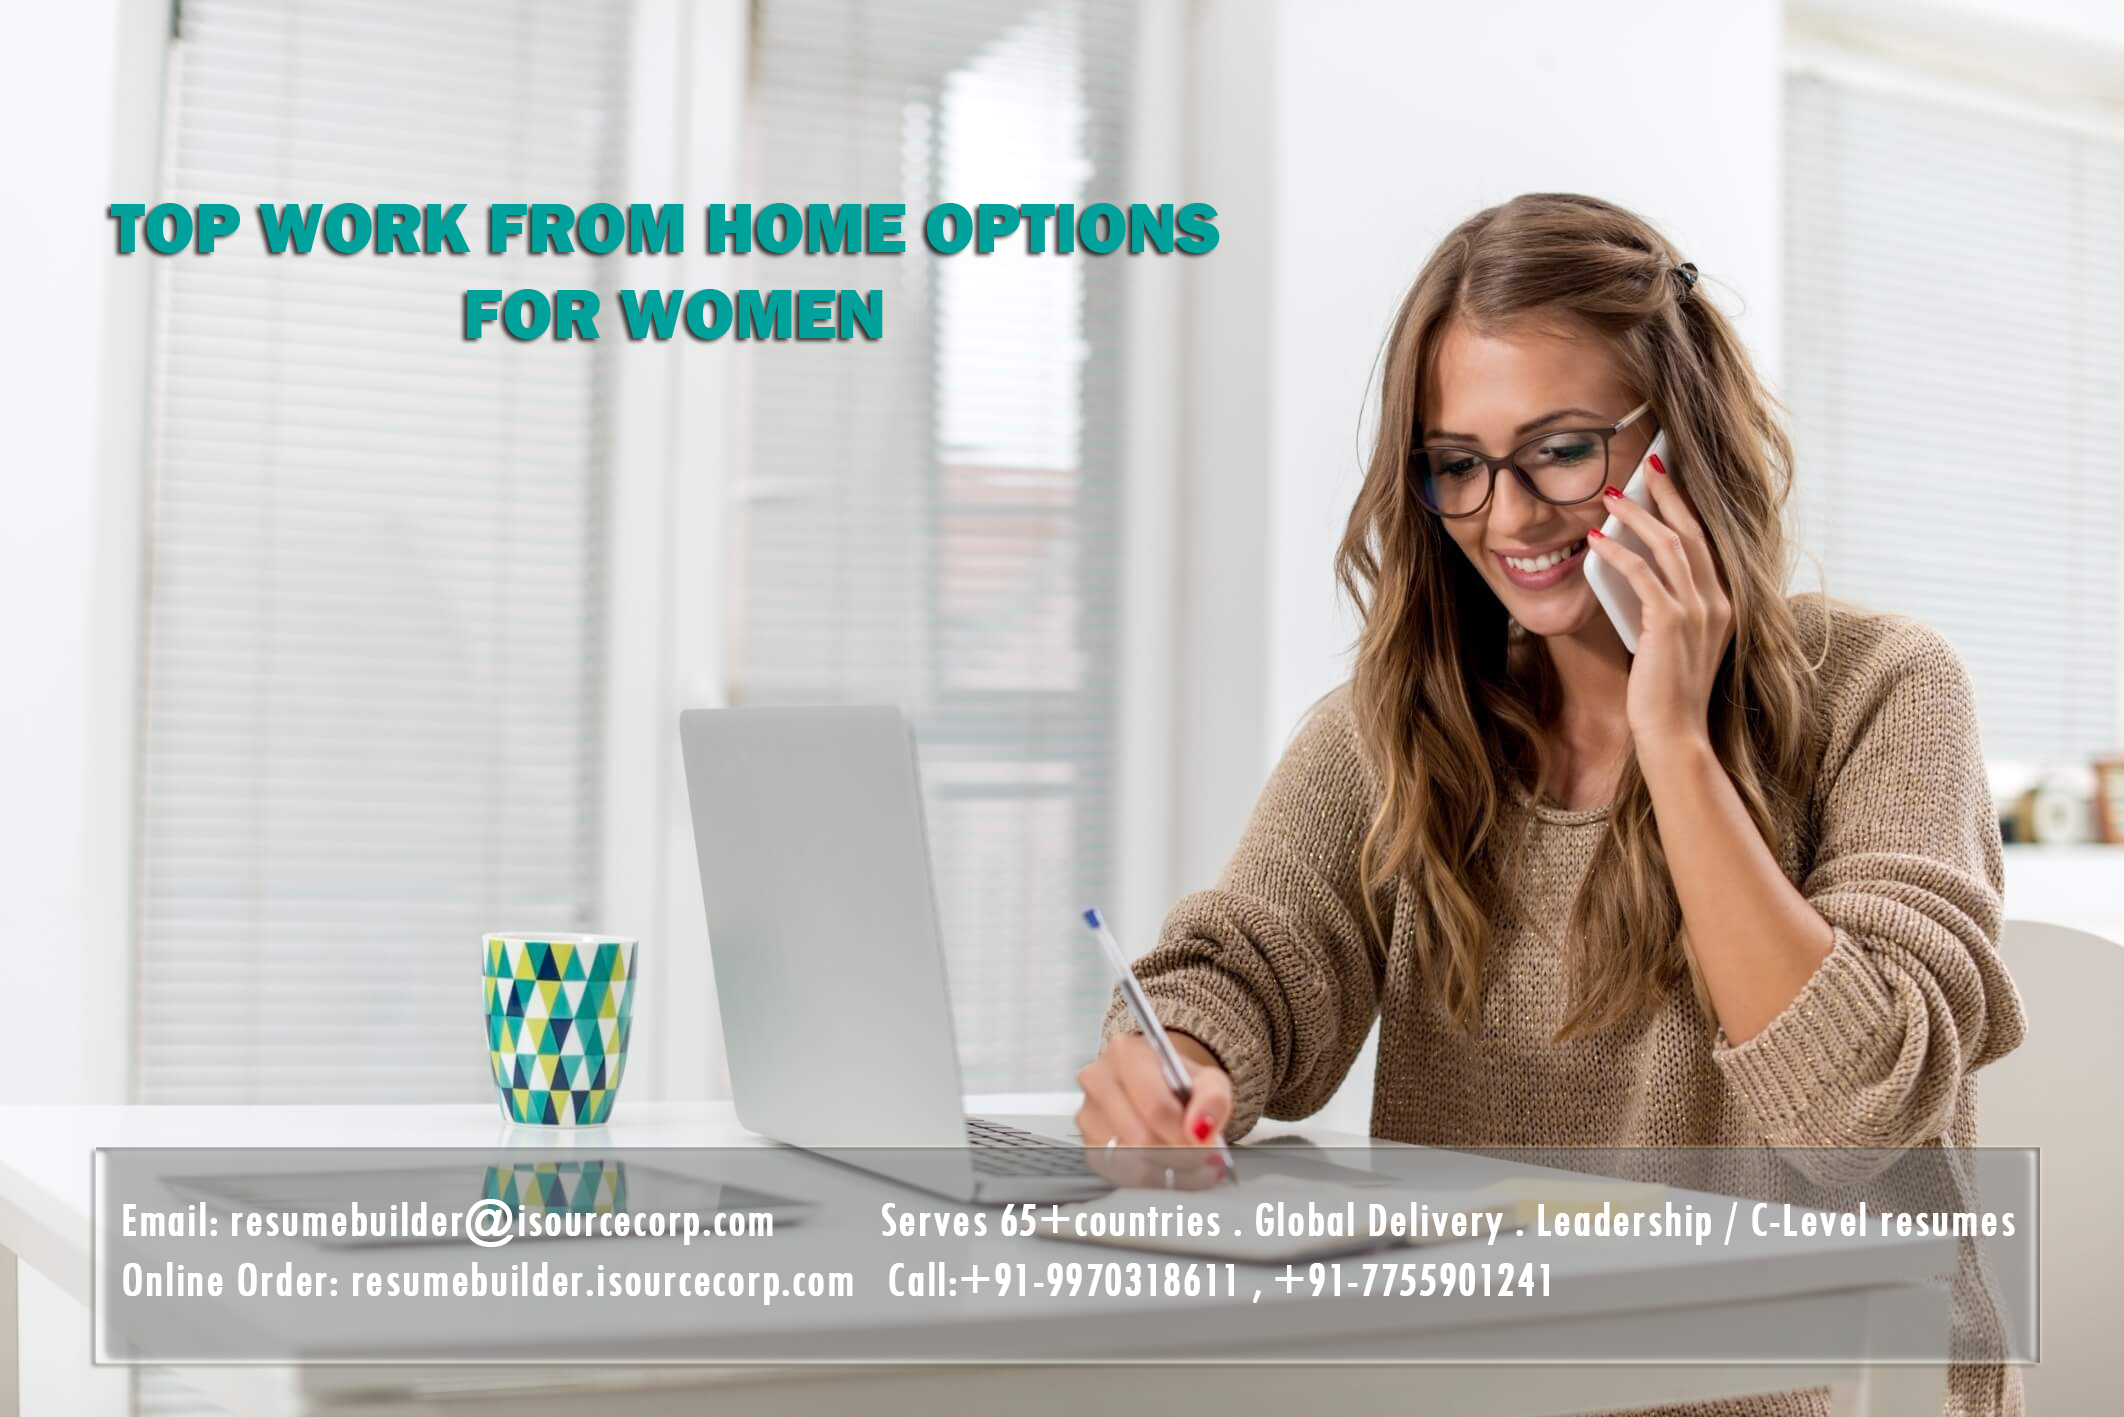 Top Work From Home options for women